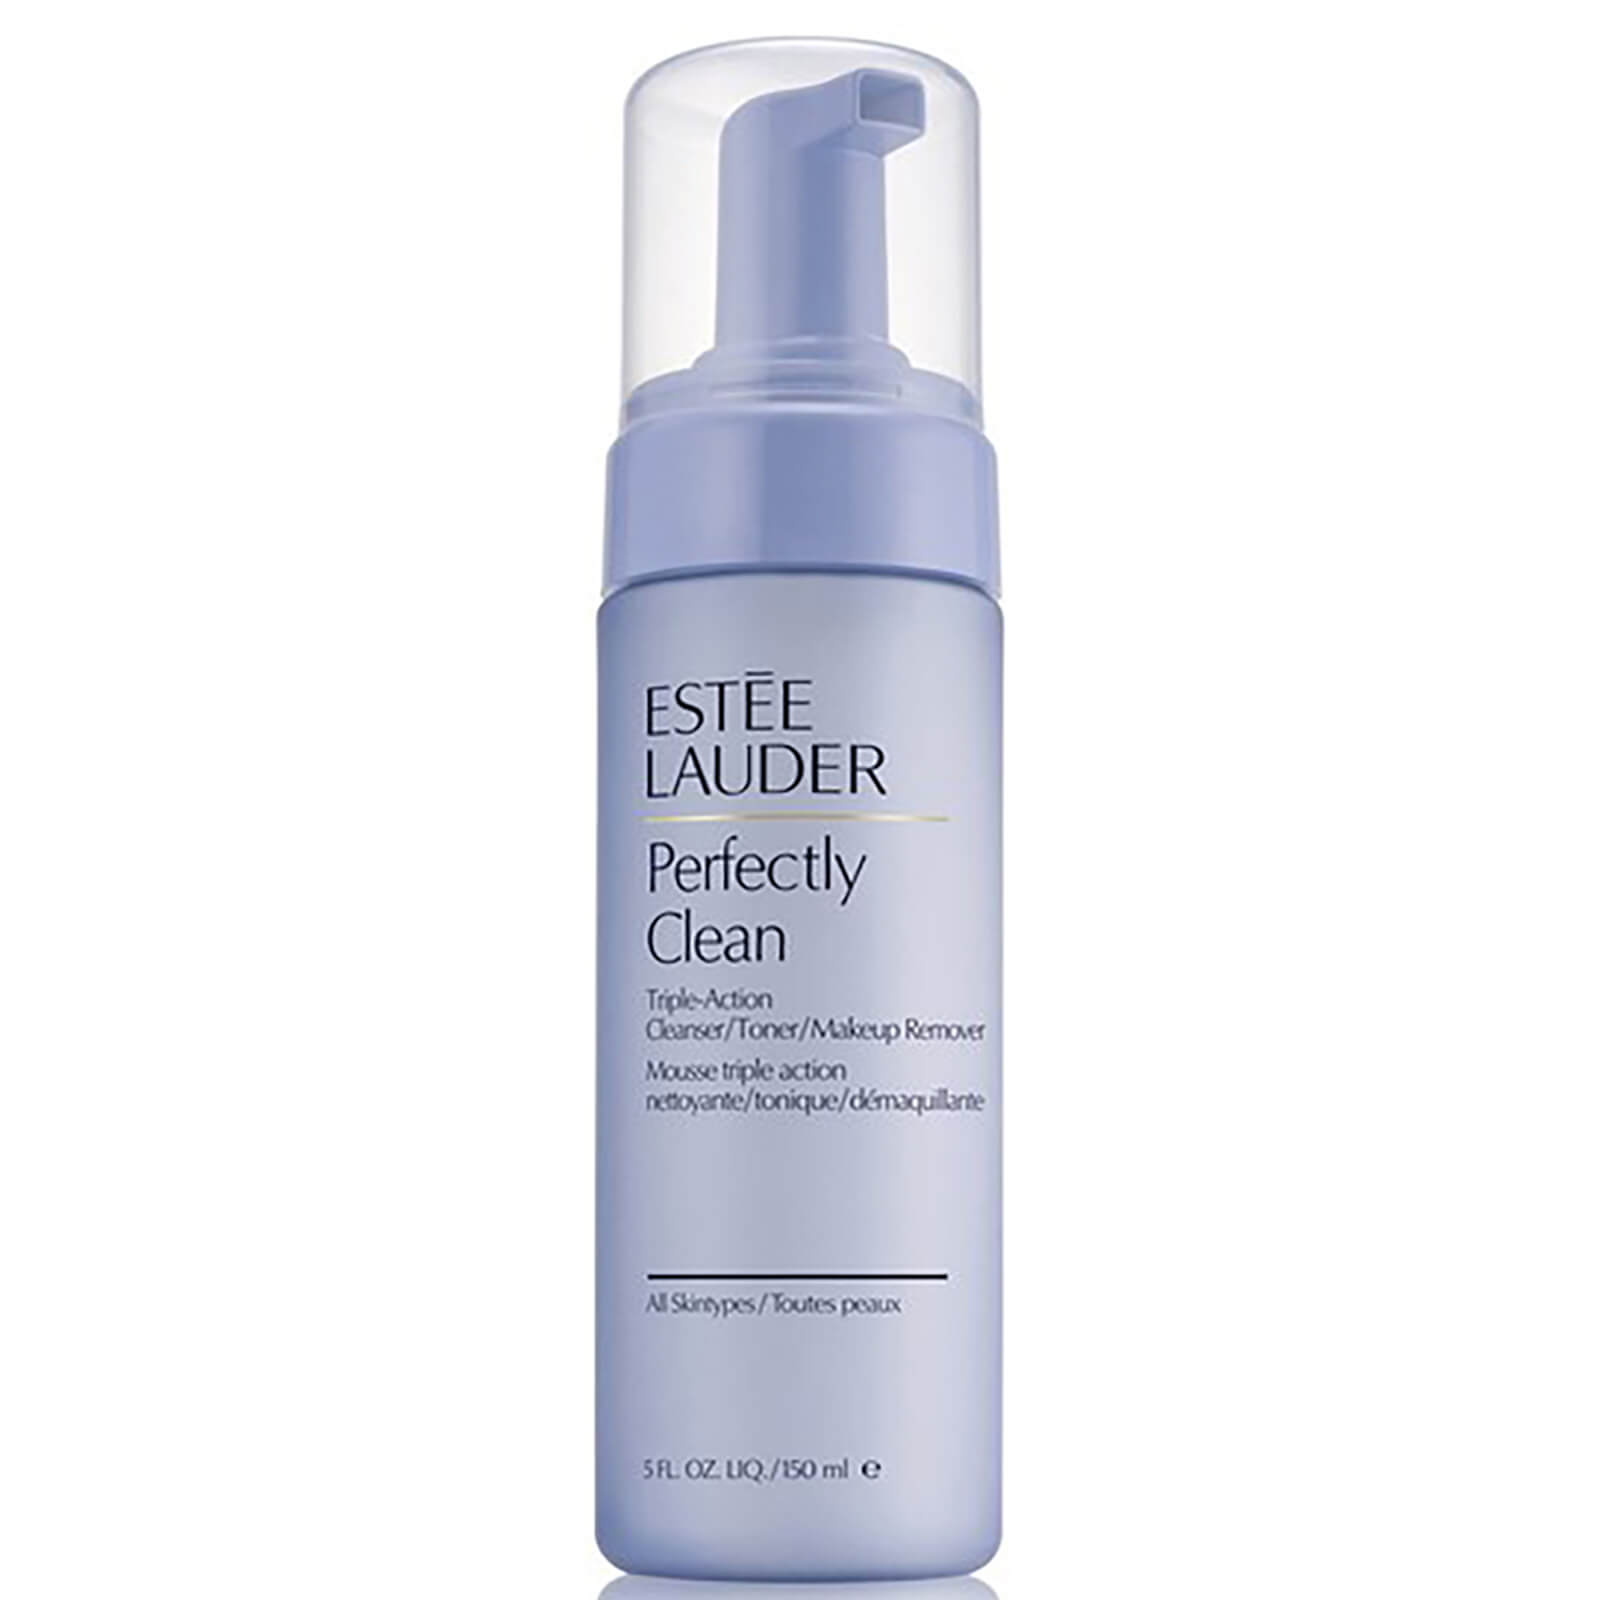 clean and clear 3 in 1 cleanser review